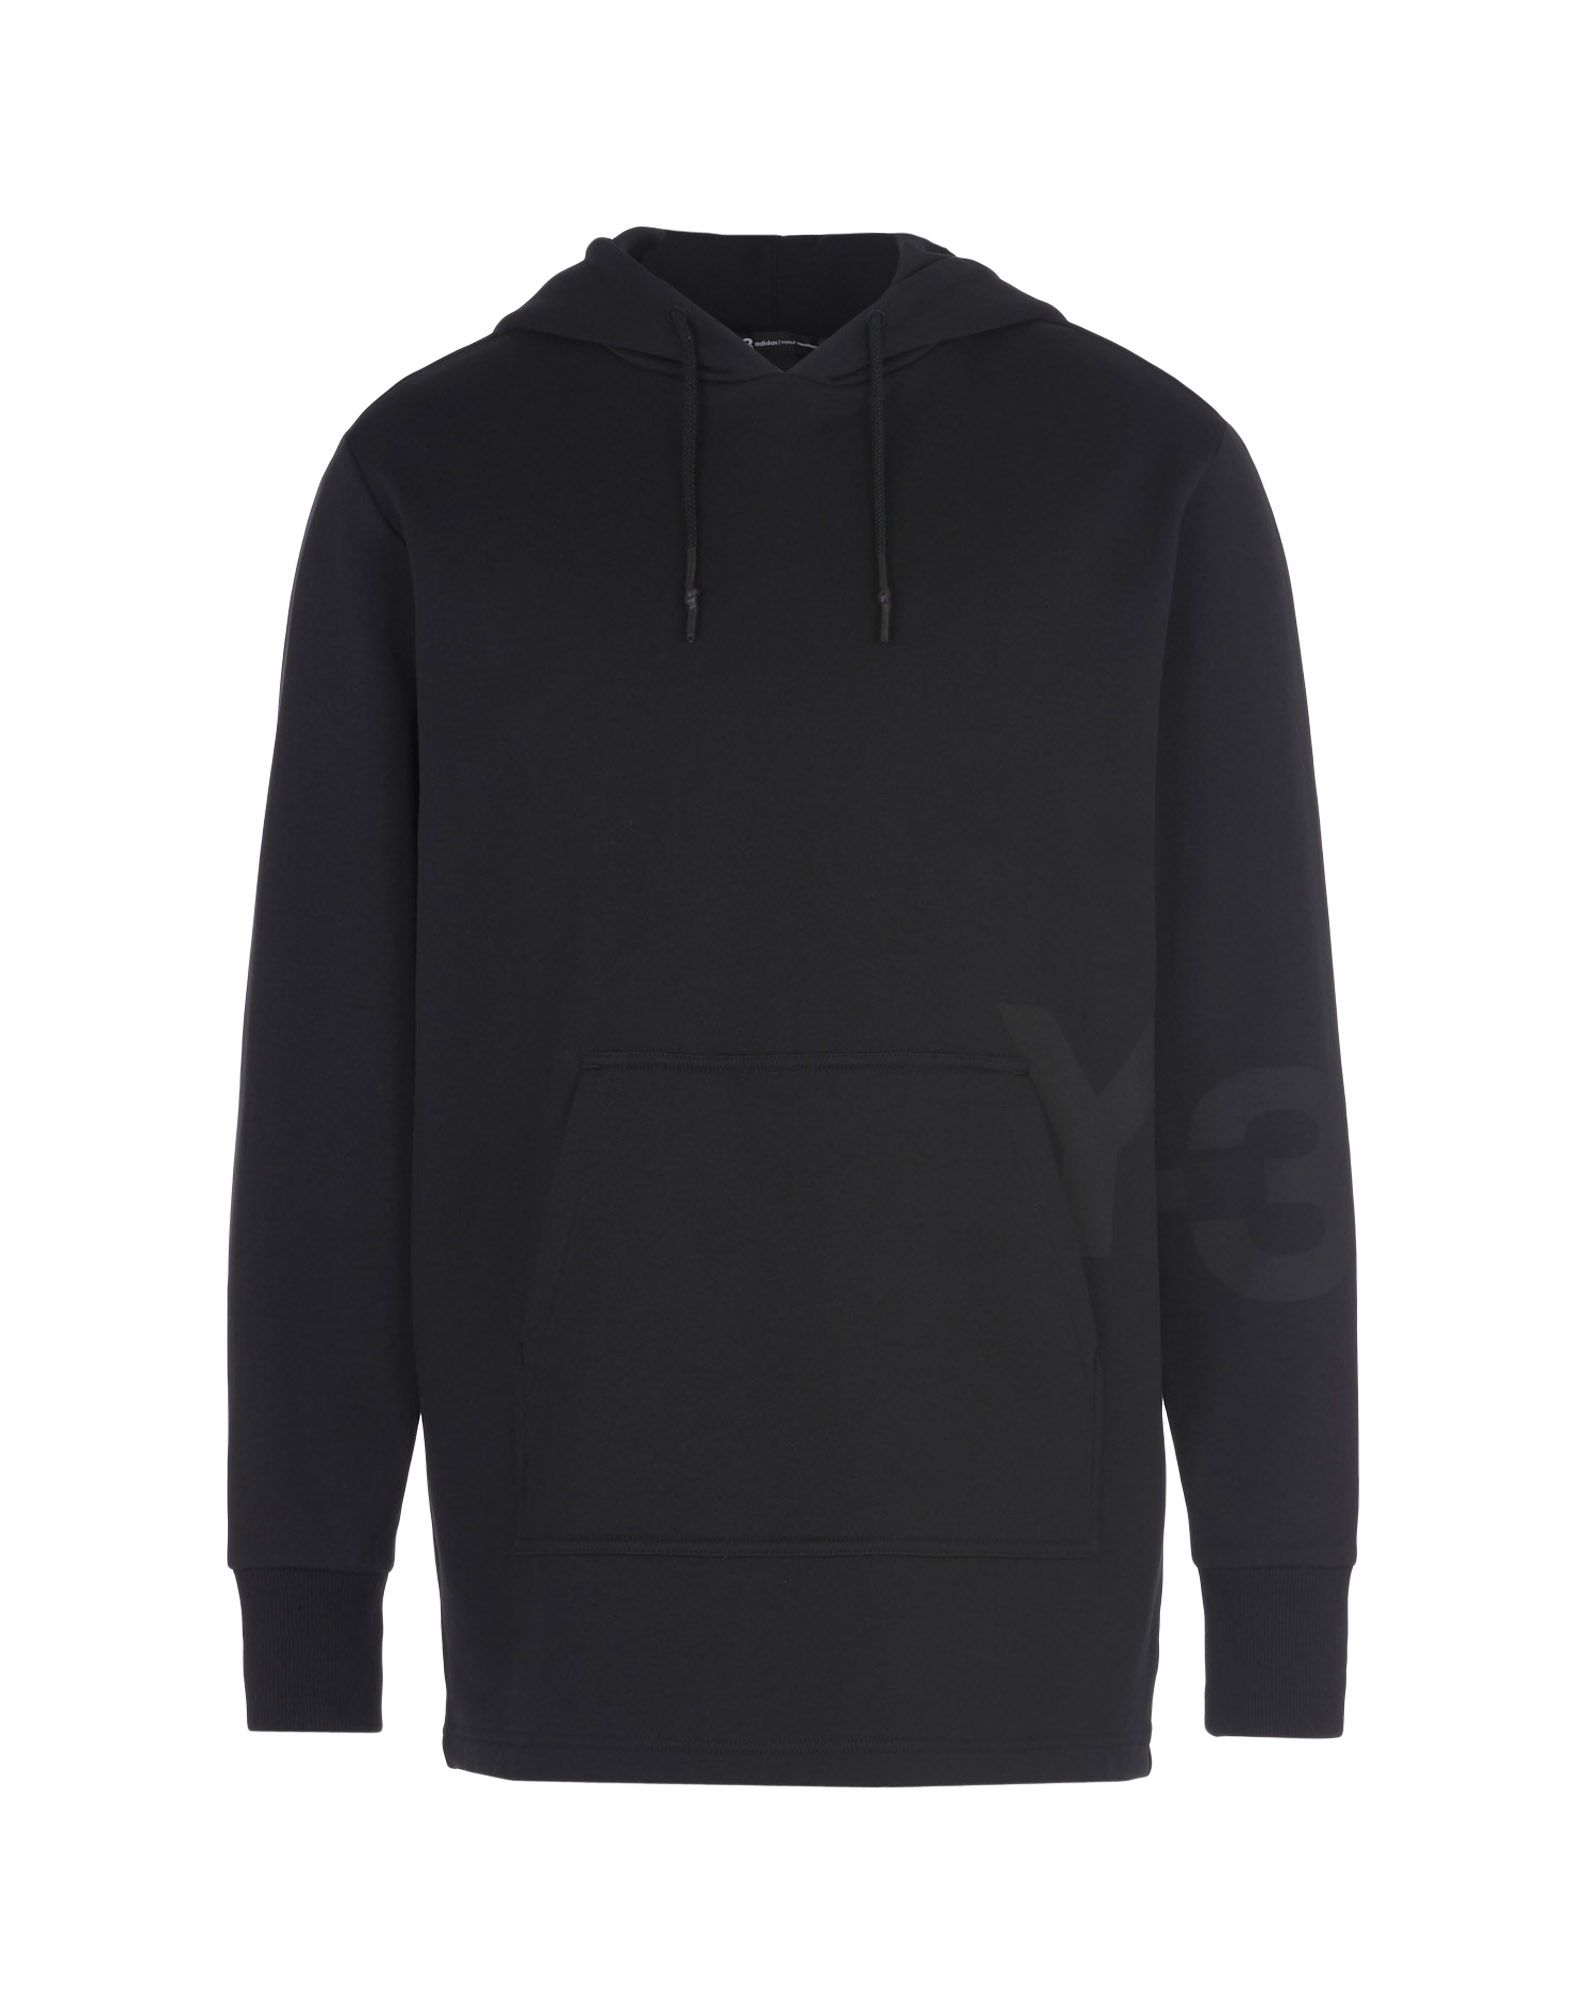 Y 3 CLASSIC HOODIE Black for Men | Adidas Y-3 Official Store